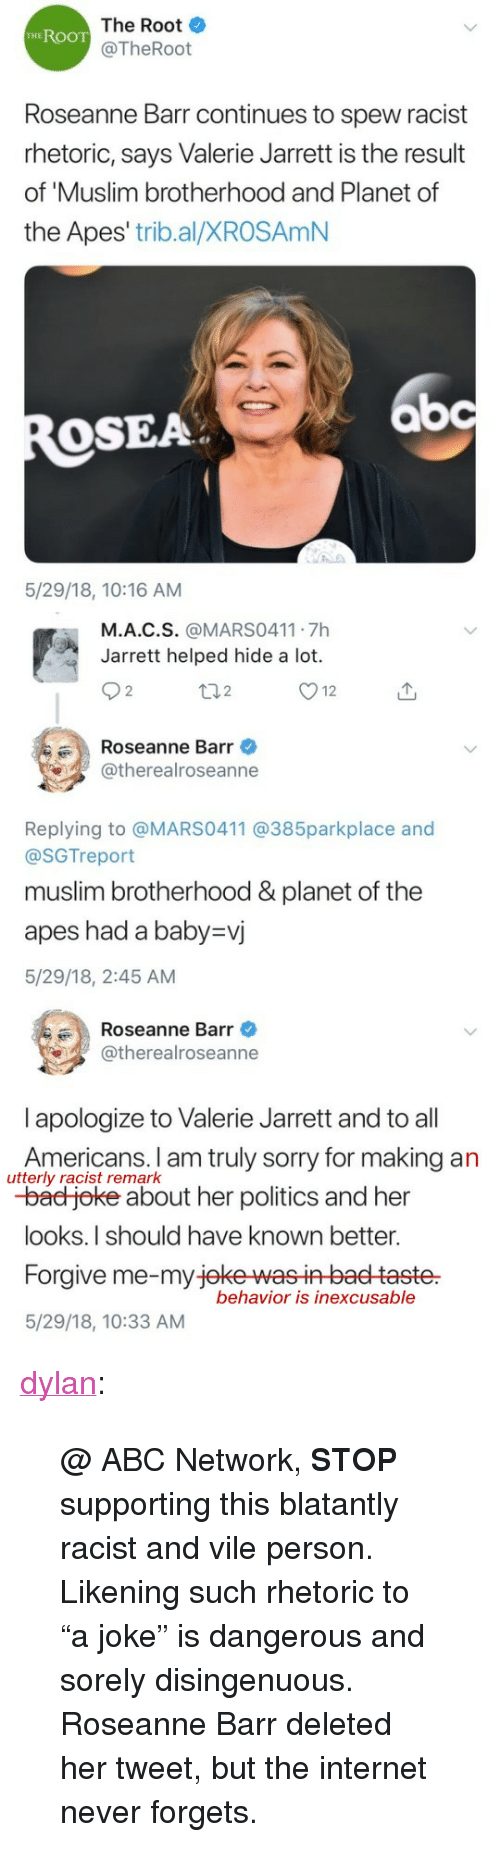 """Roseanne Barr: The Root  @TheRoot  HEROOT  Roseanne Barr continues to spew racist  rhetoric, says Valerie Jarrett is the result  of 'Muslim brotherhood and Planet of  the Apes' trib.al/XROSAmN  bc  OSEA  5/29/18, 10:16 AM   M.A.C.S. @MARS0411 7h  Jarrett helped hide a lot.  2  2  Roseanne Barr  @therealroseanne  Replying to @MARS0411 @385parkplace and  @SGTreport  muslim brotherhood &planet of the  apes had a baby-vj  5/29/18, 2:45 AM   Roseanne Barr  @therealroseanne  l apologize to Valerie Jarrett and to all  Americans. I am truly sorry for making an  -bad joke about her politics and her  looks.I should have known better.  Forgive me-my jeke wasin baet taste  5/29/18, 10:33 AM  utterly racist remark  behavior is inexcusable <p><a href=""""https://dylan.tumblr.com/post/174371828198/abc-network-stop-supporting-this-blatantly"""" class=""""tumblr_blog"""">dylan</a>:</p><blockquote> <p>@ ABC Network, <b>STOP</b> supporting this blatantly racist and vile person.</p> <p>Likening such rhetoric to """"a joke"""" is dangerous and sorely disingenuous.</p> <p>Roseanne Barr deleted her tweet, but the internet never forgets.</p> </blockquote>"""